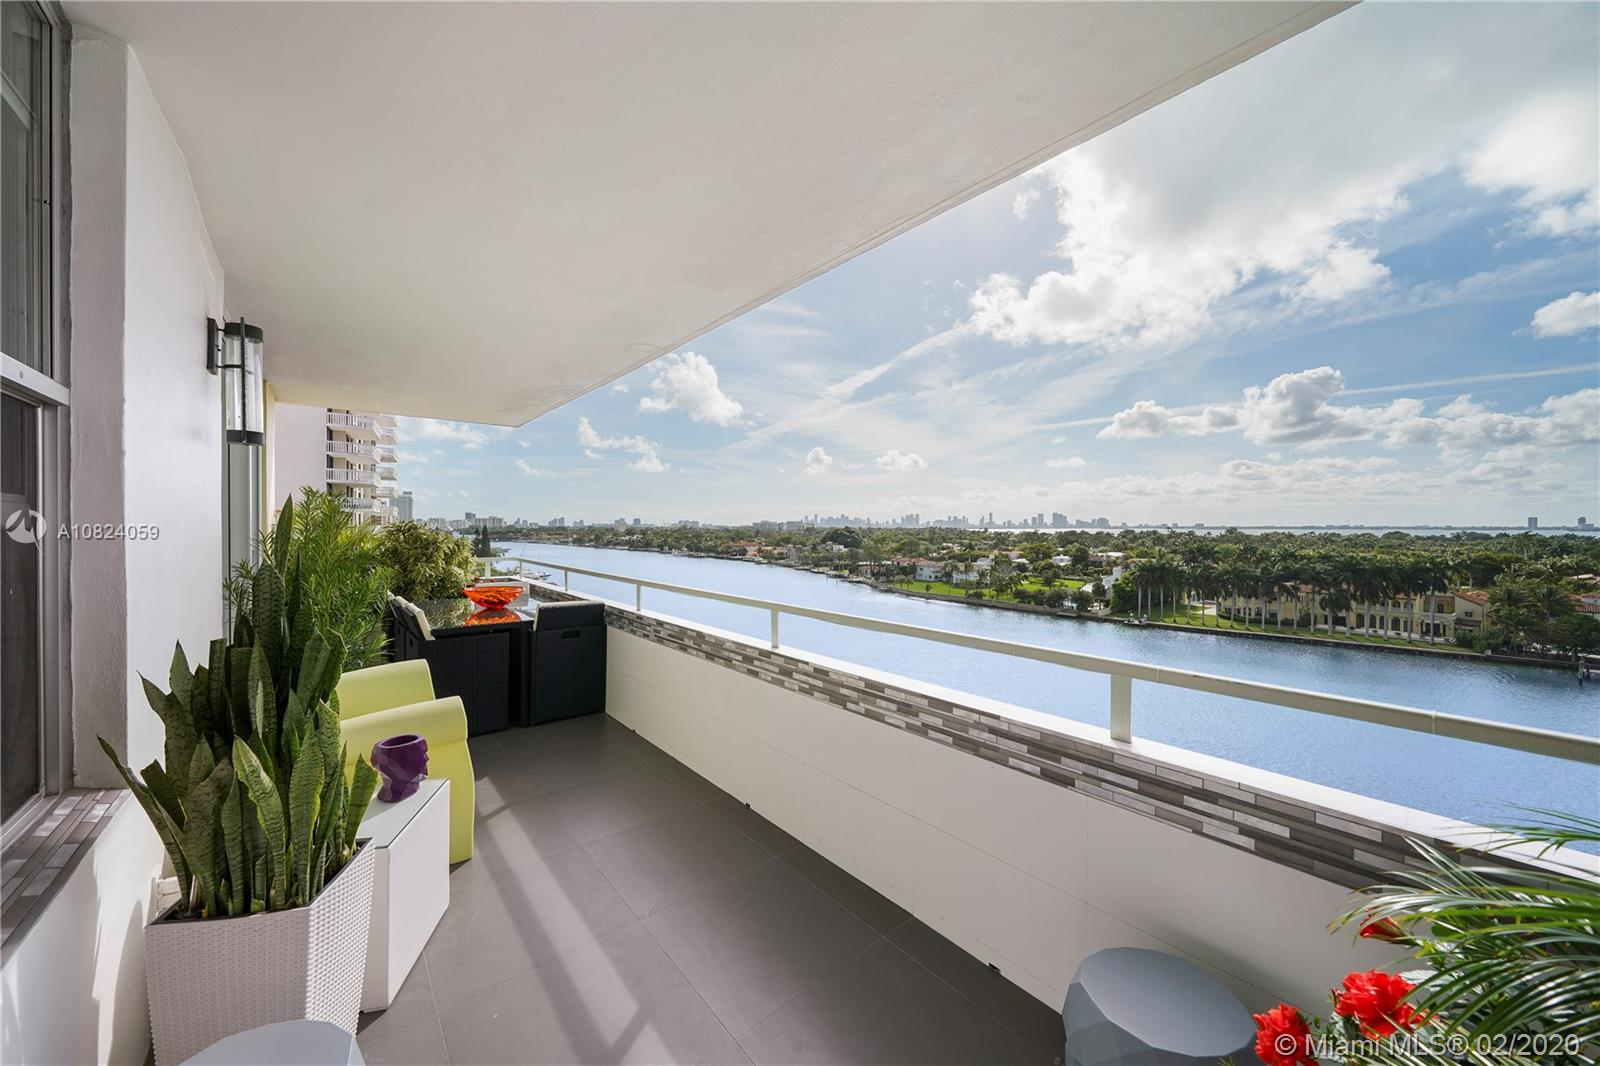 """FULLY remodeled 2 bedroom on the Millionaire's Row!! Enjoy the breathtaking views from every room of the Bay, Miami Skyline, and the sunset! 1,750 SqFt of interior living space & large balcony with full privacy, this generously sized property is perfect as a full time residence or spectacular vacation home. This corner unit features white porcelain flooring, spacious and bright dining & living area, fully remodeled kitchen & bathrooms. Impact windows throughout. Resort-style building featuring amenities such as fitness center, pool with cabanas, lounge with card/billiards room, pool table, high-speed cabling Internet (included in the maintenance), barbecue area, a restaurant, 24/7 doorman, valet, and MARINA to park your boat.BEST LINE IN THE BUILDING & ONLY UNIT AVAILABLE FOR SALE """"F"""""""